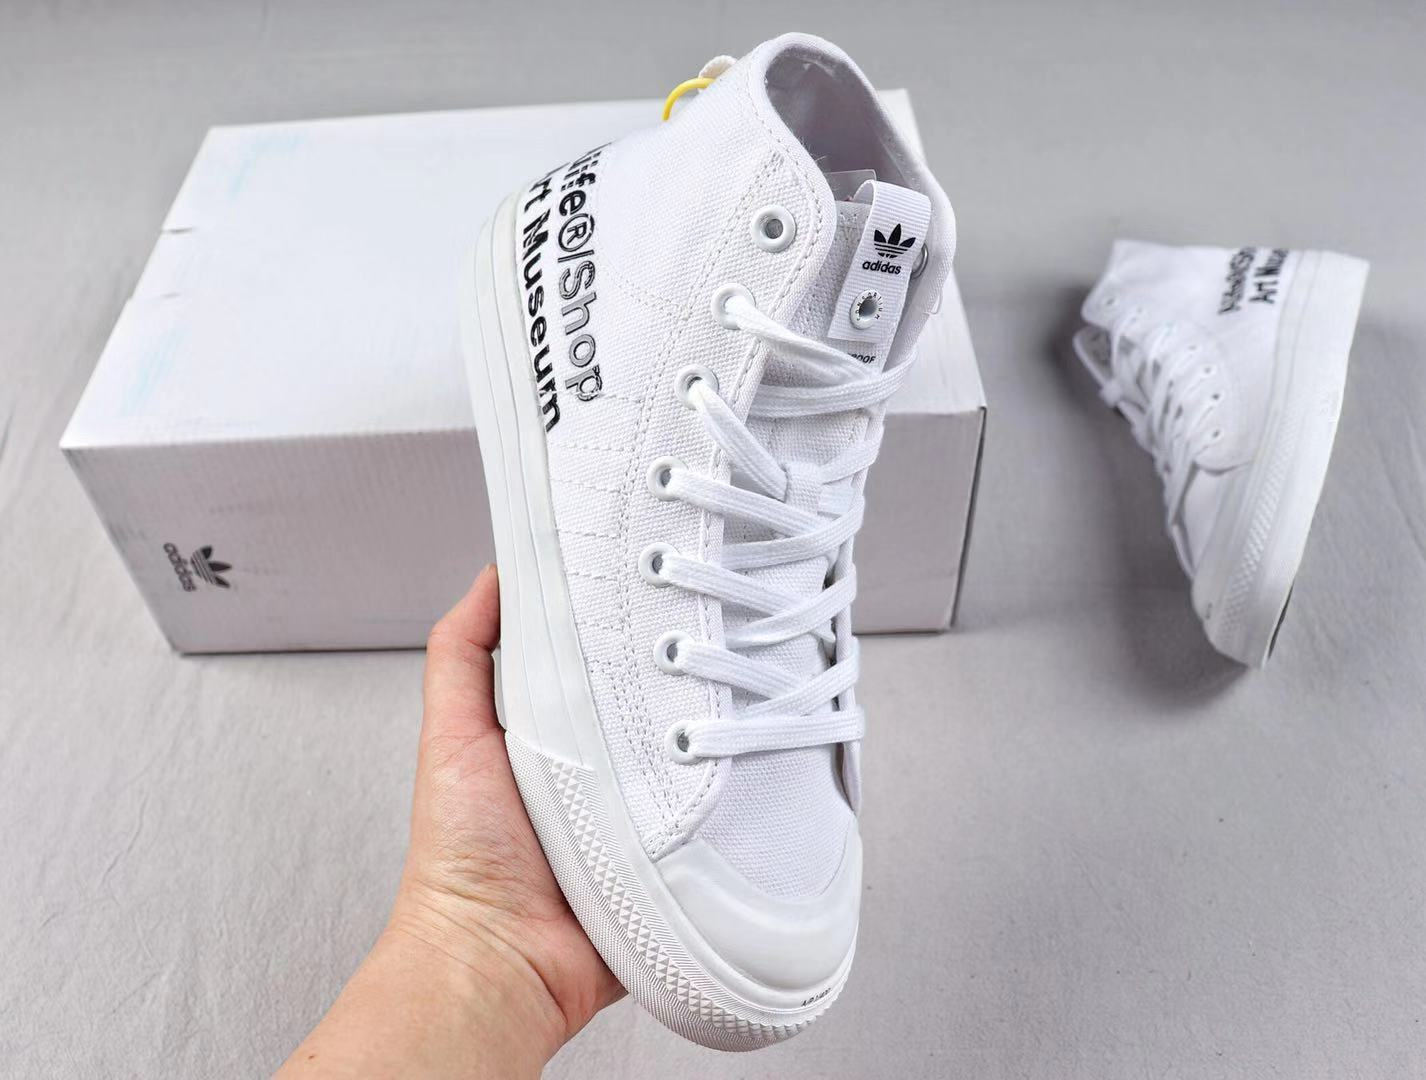 Alife x Adidas Consortium Nizza High Coud White Sneakers To Buy G27820